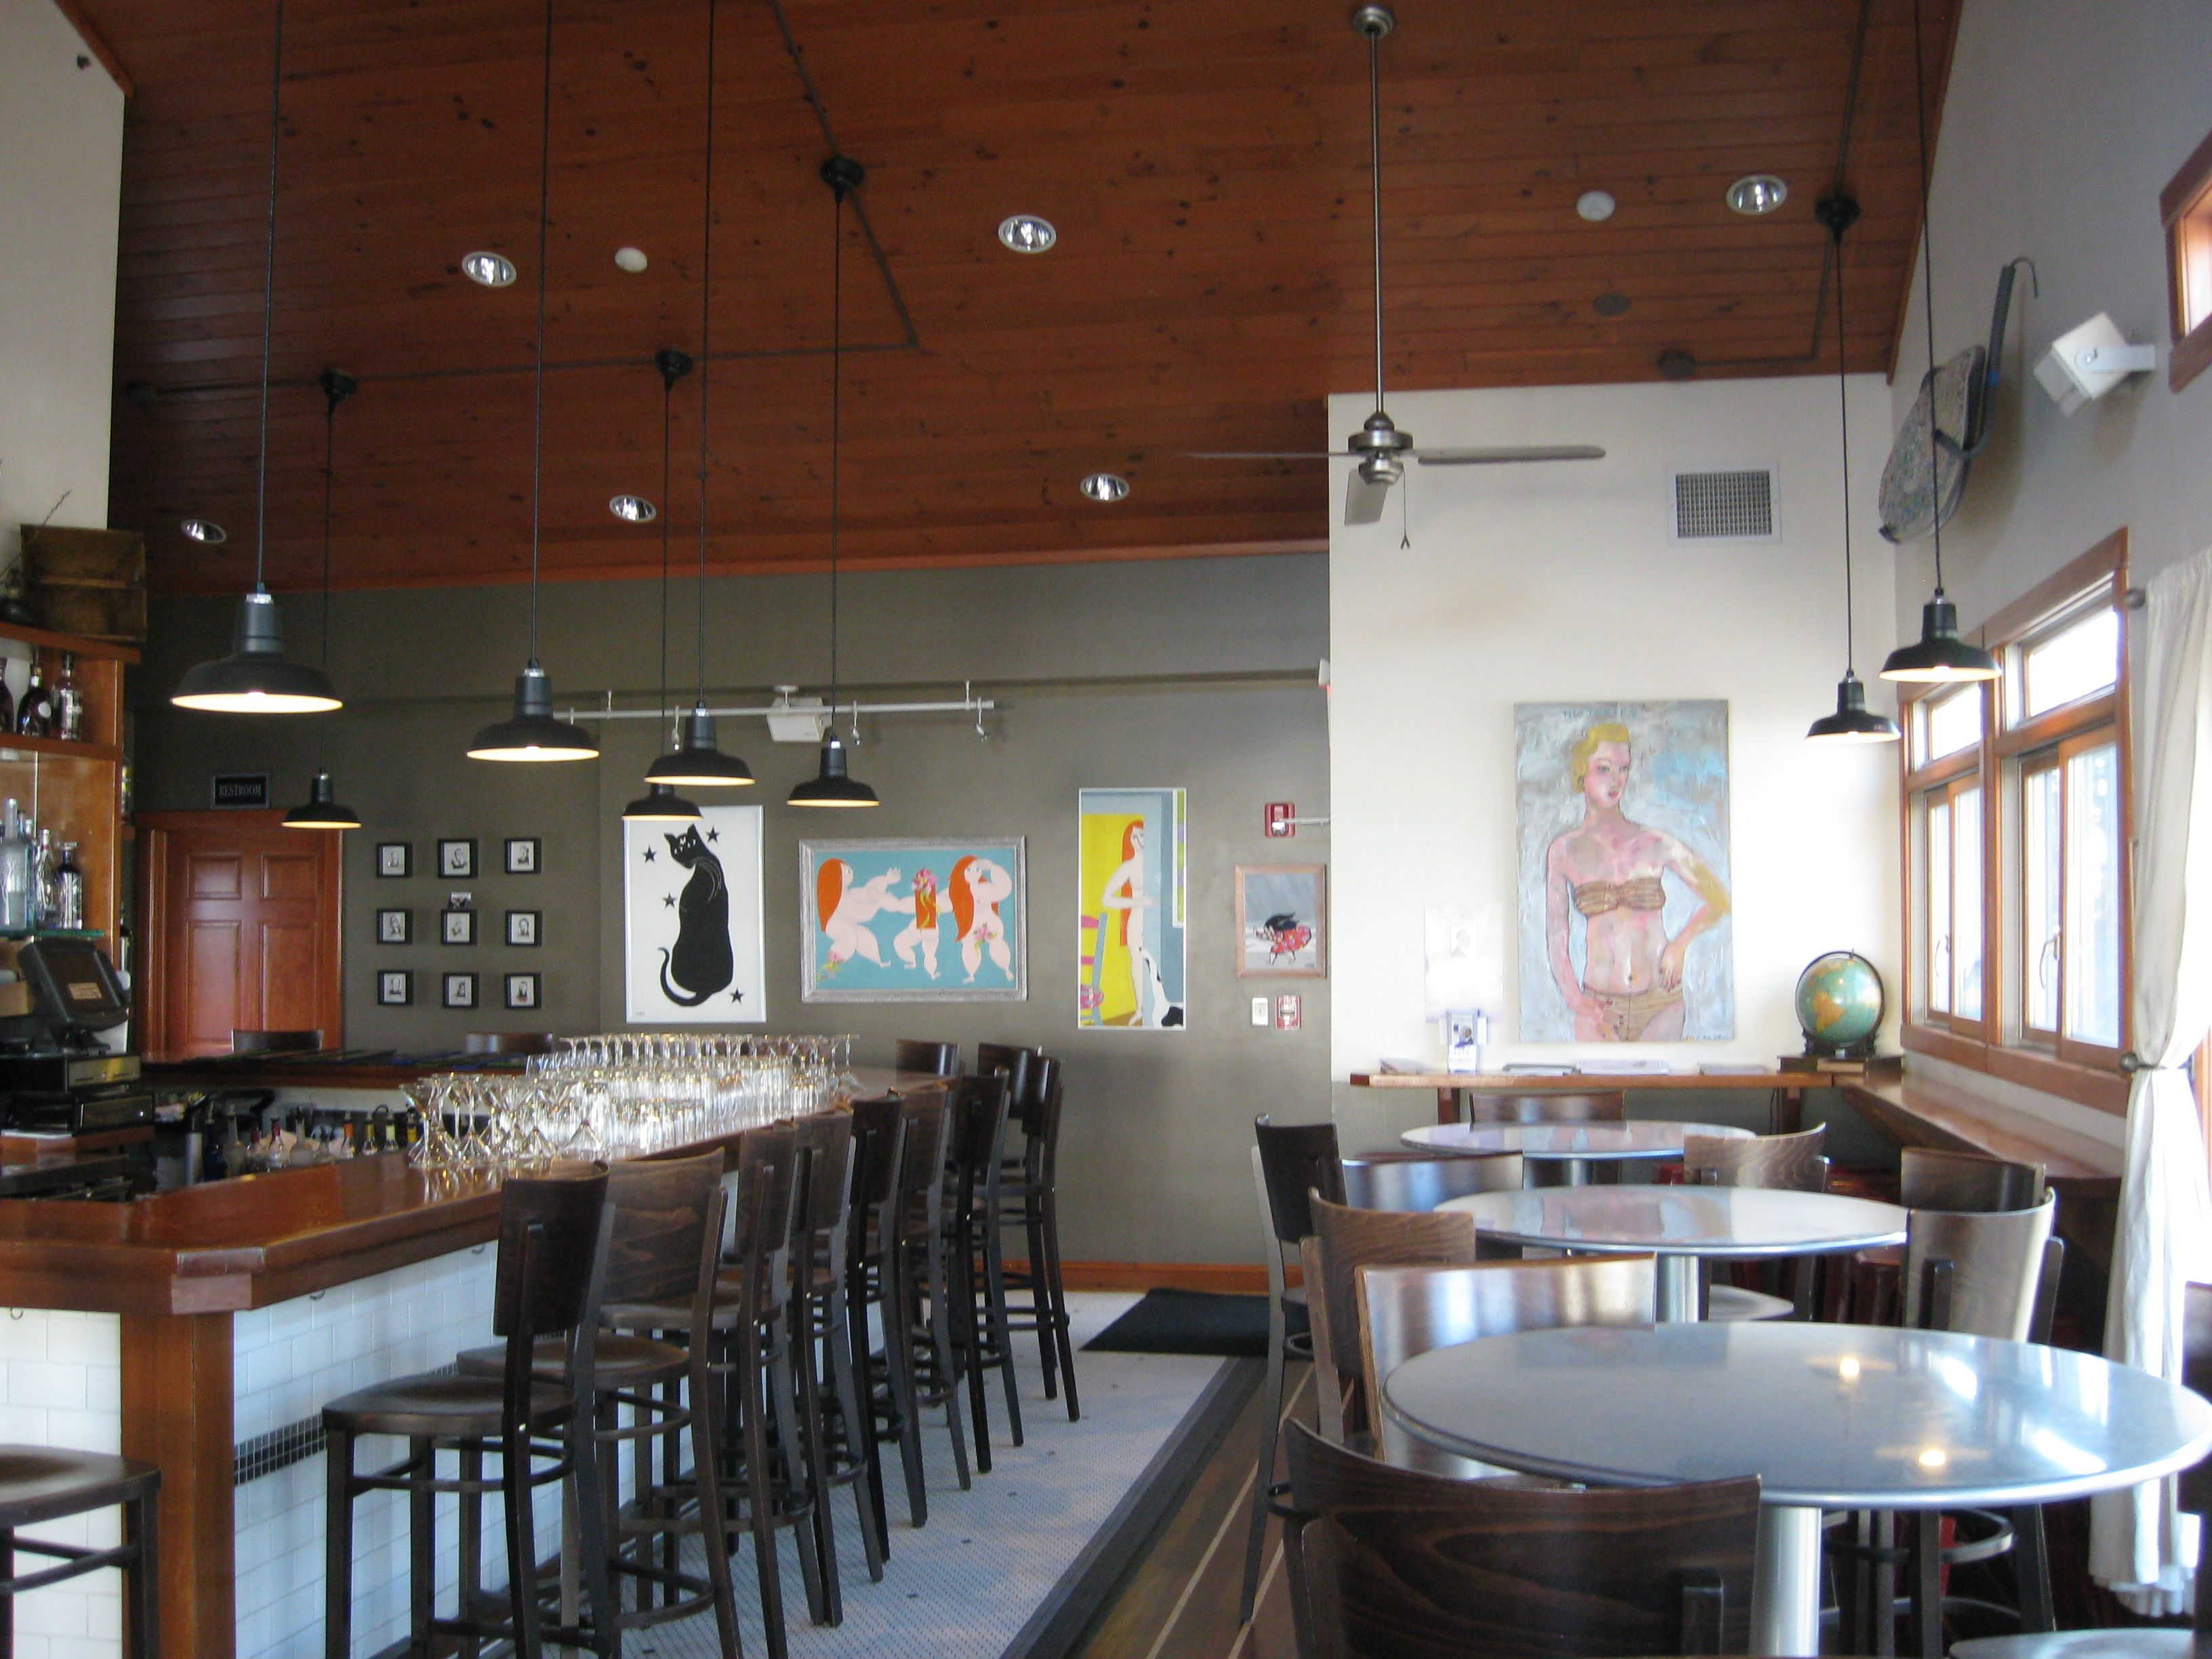 Featured Customer Led Barn Pendants For New Jersey Oyster Bar